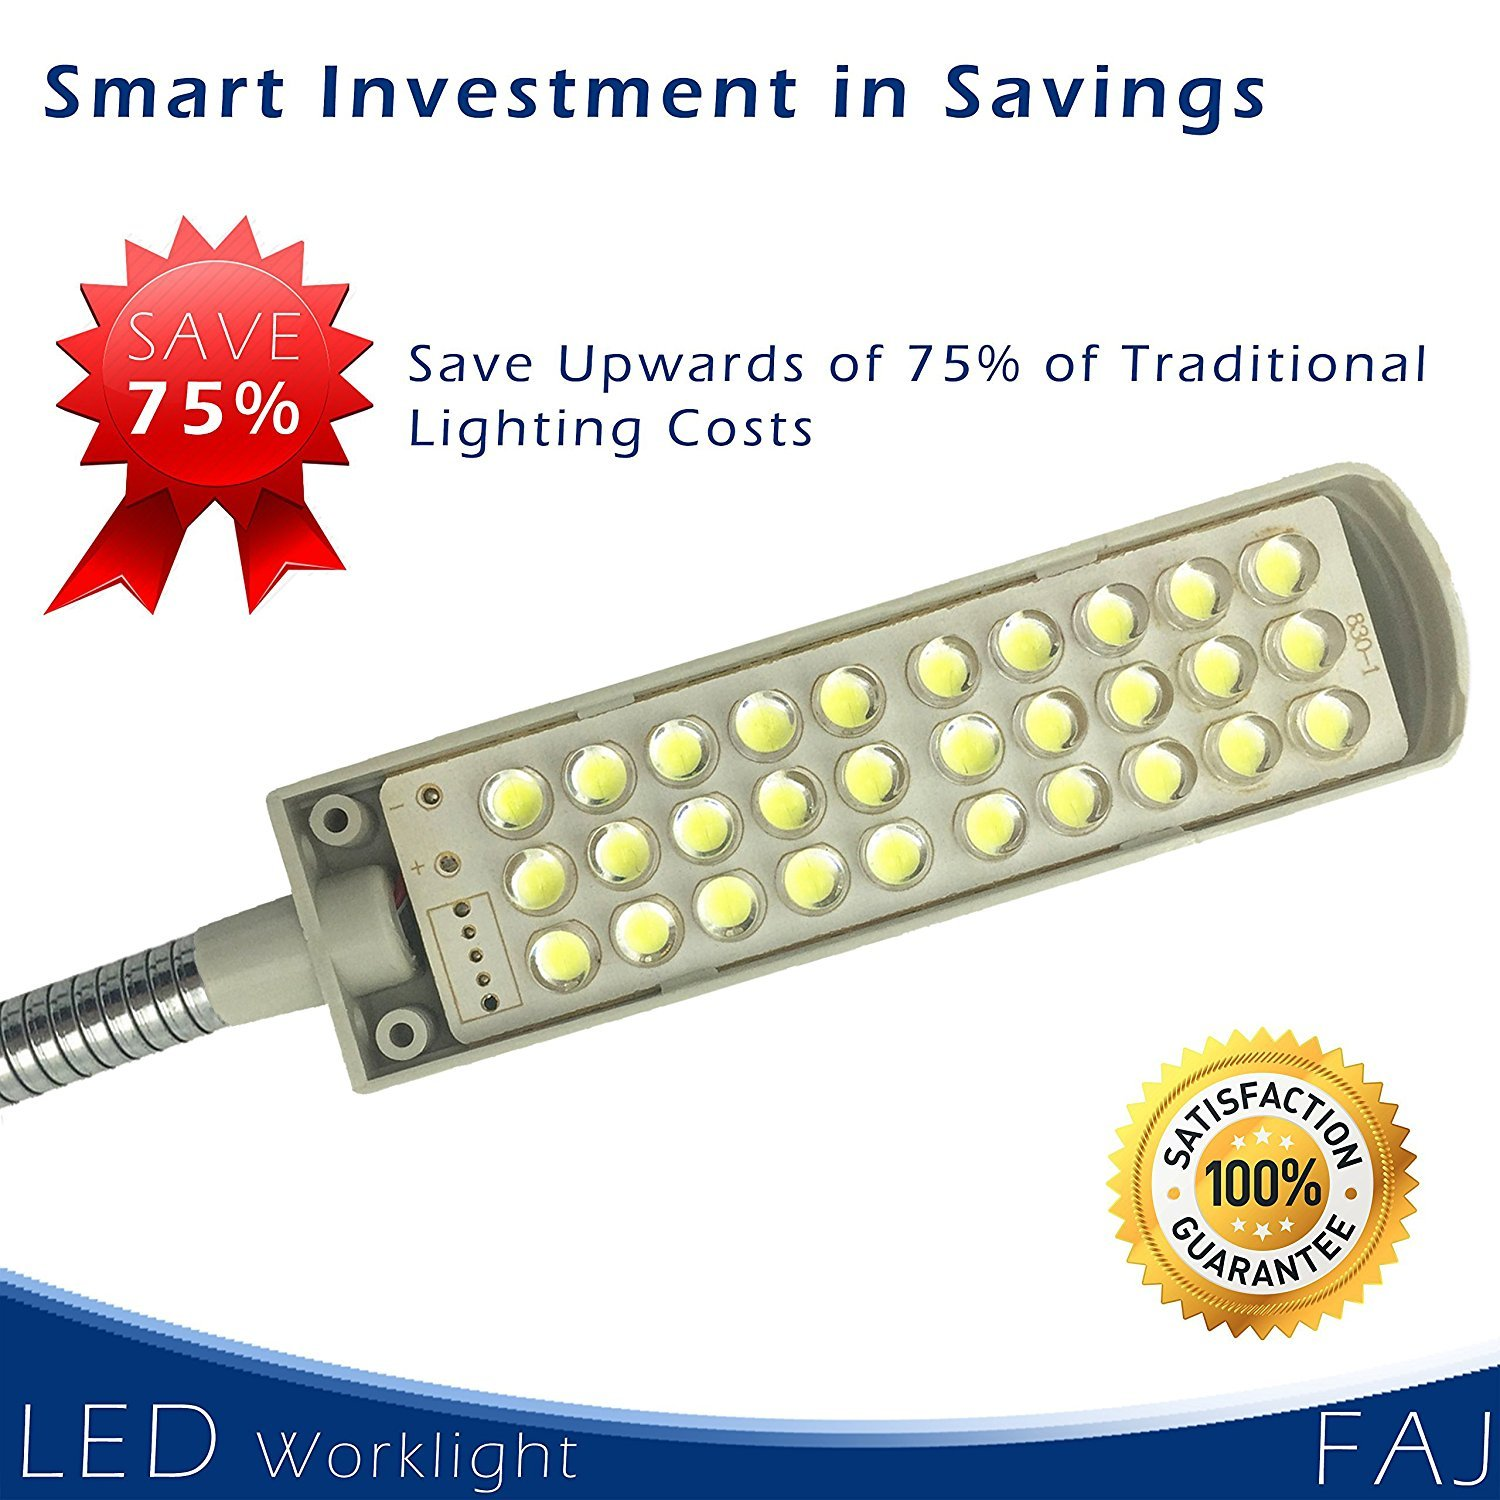 FAJ Magnetic 12-Inches Extra Long Flexible Gooseneck Arm Multifunctional Worklight, Bright Daylight LEDs Sewing Machines, Lathes, Drill Presses, Workbenches, Music Stands (30 led) by FAJ (Image #4)